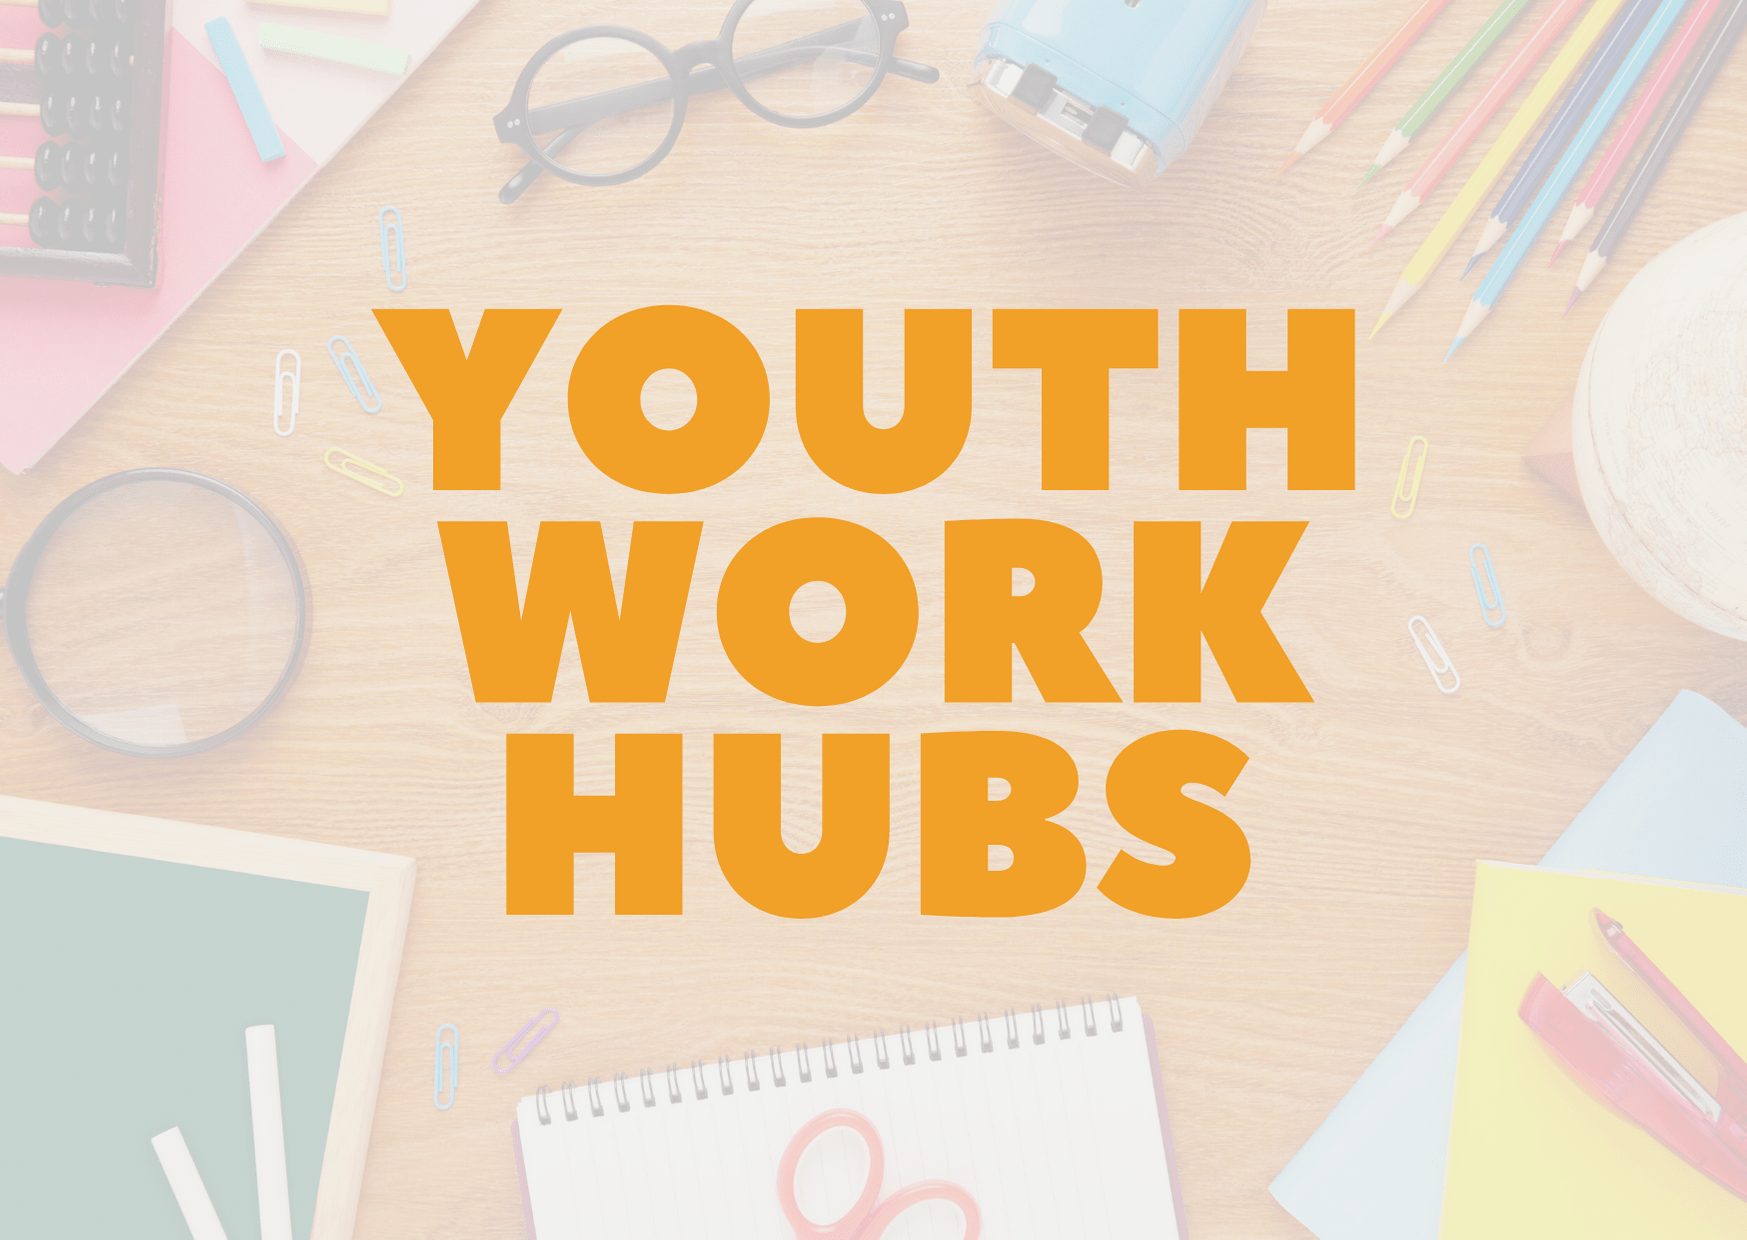 Youth Work HUBs